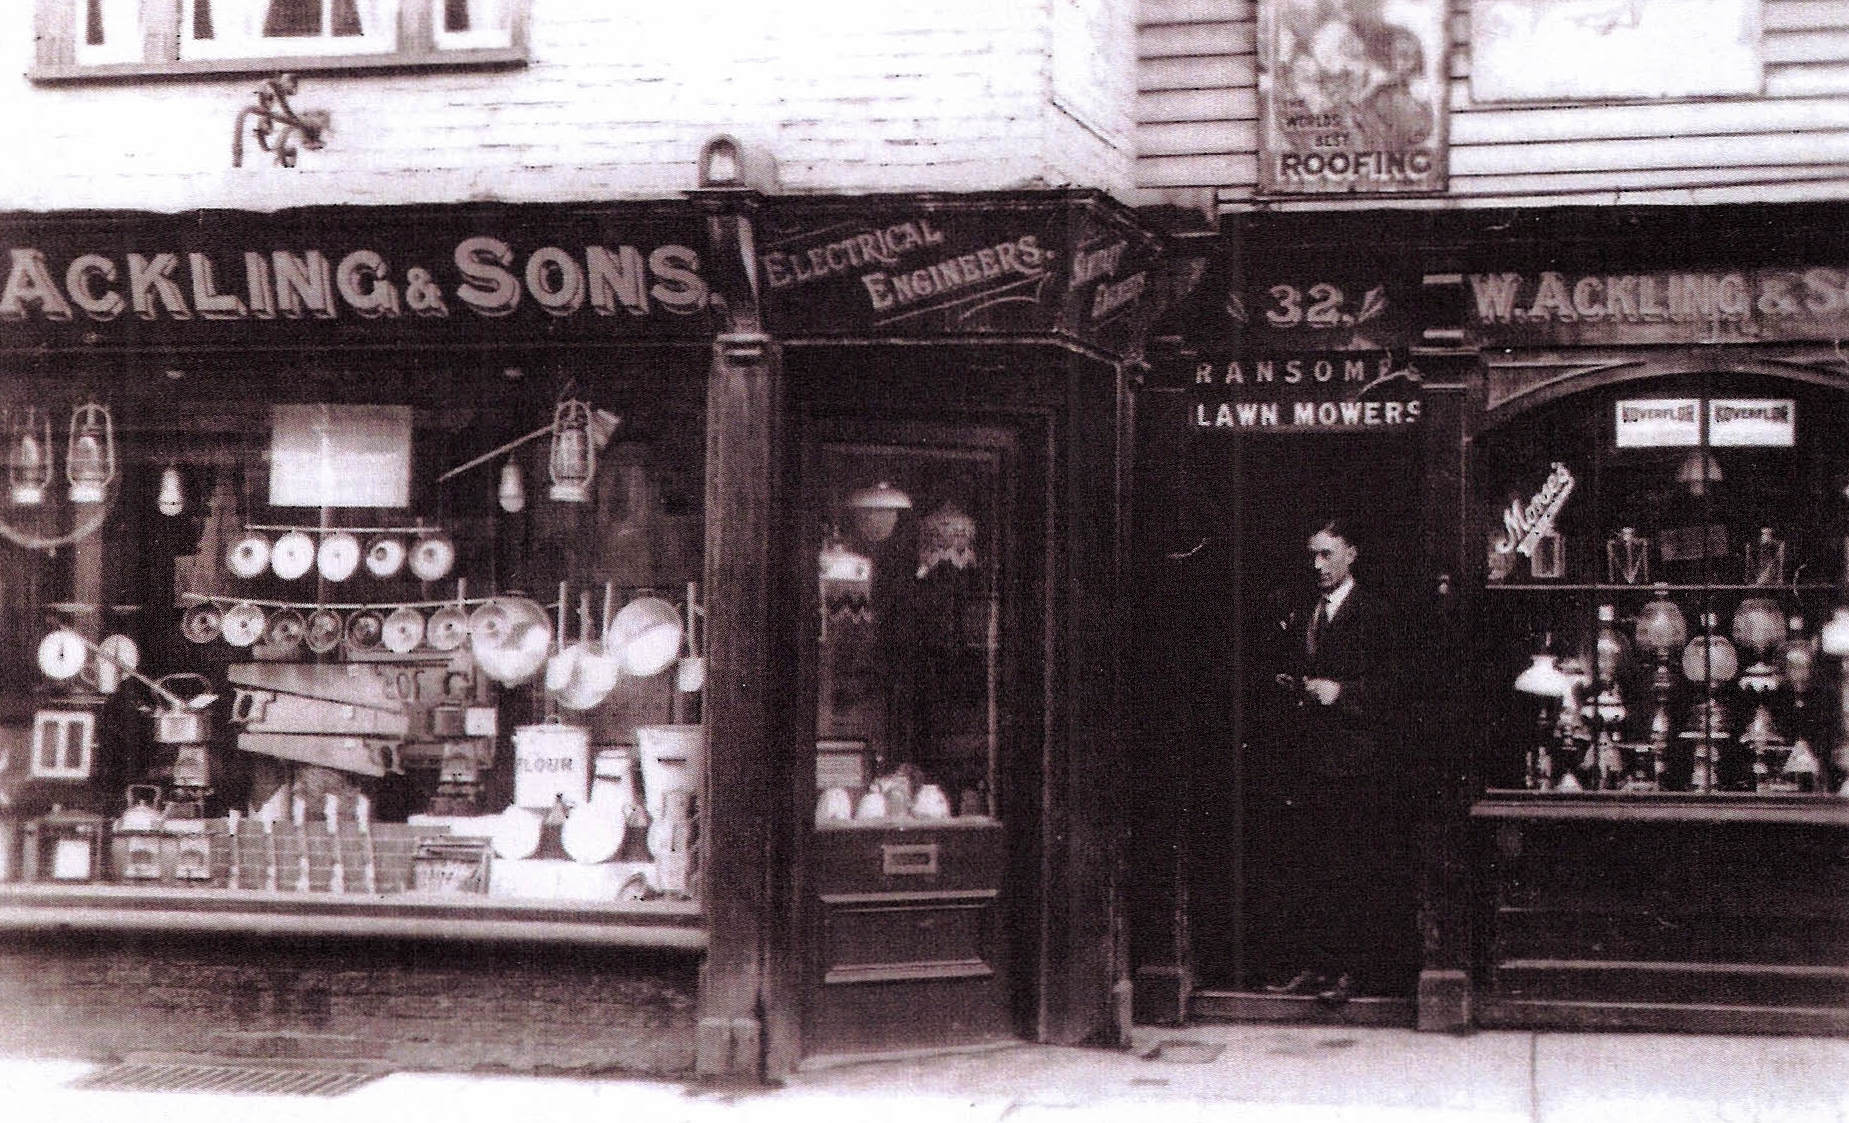 W. Ackling & Sons in the 1920s at what is now (2015) 44 Bath Street